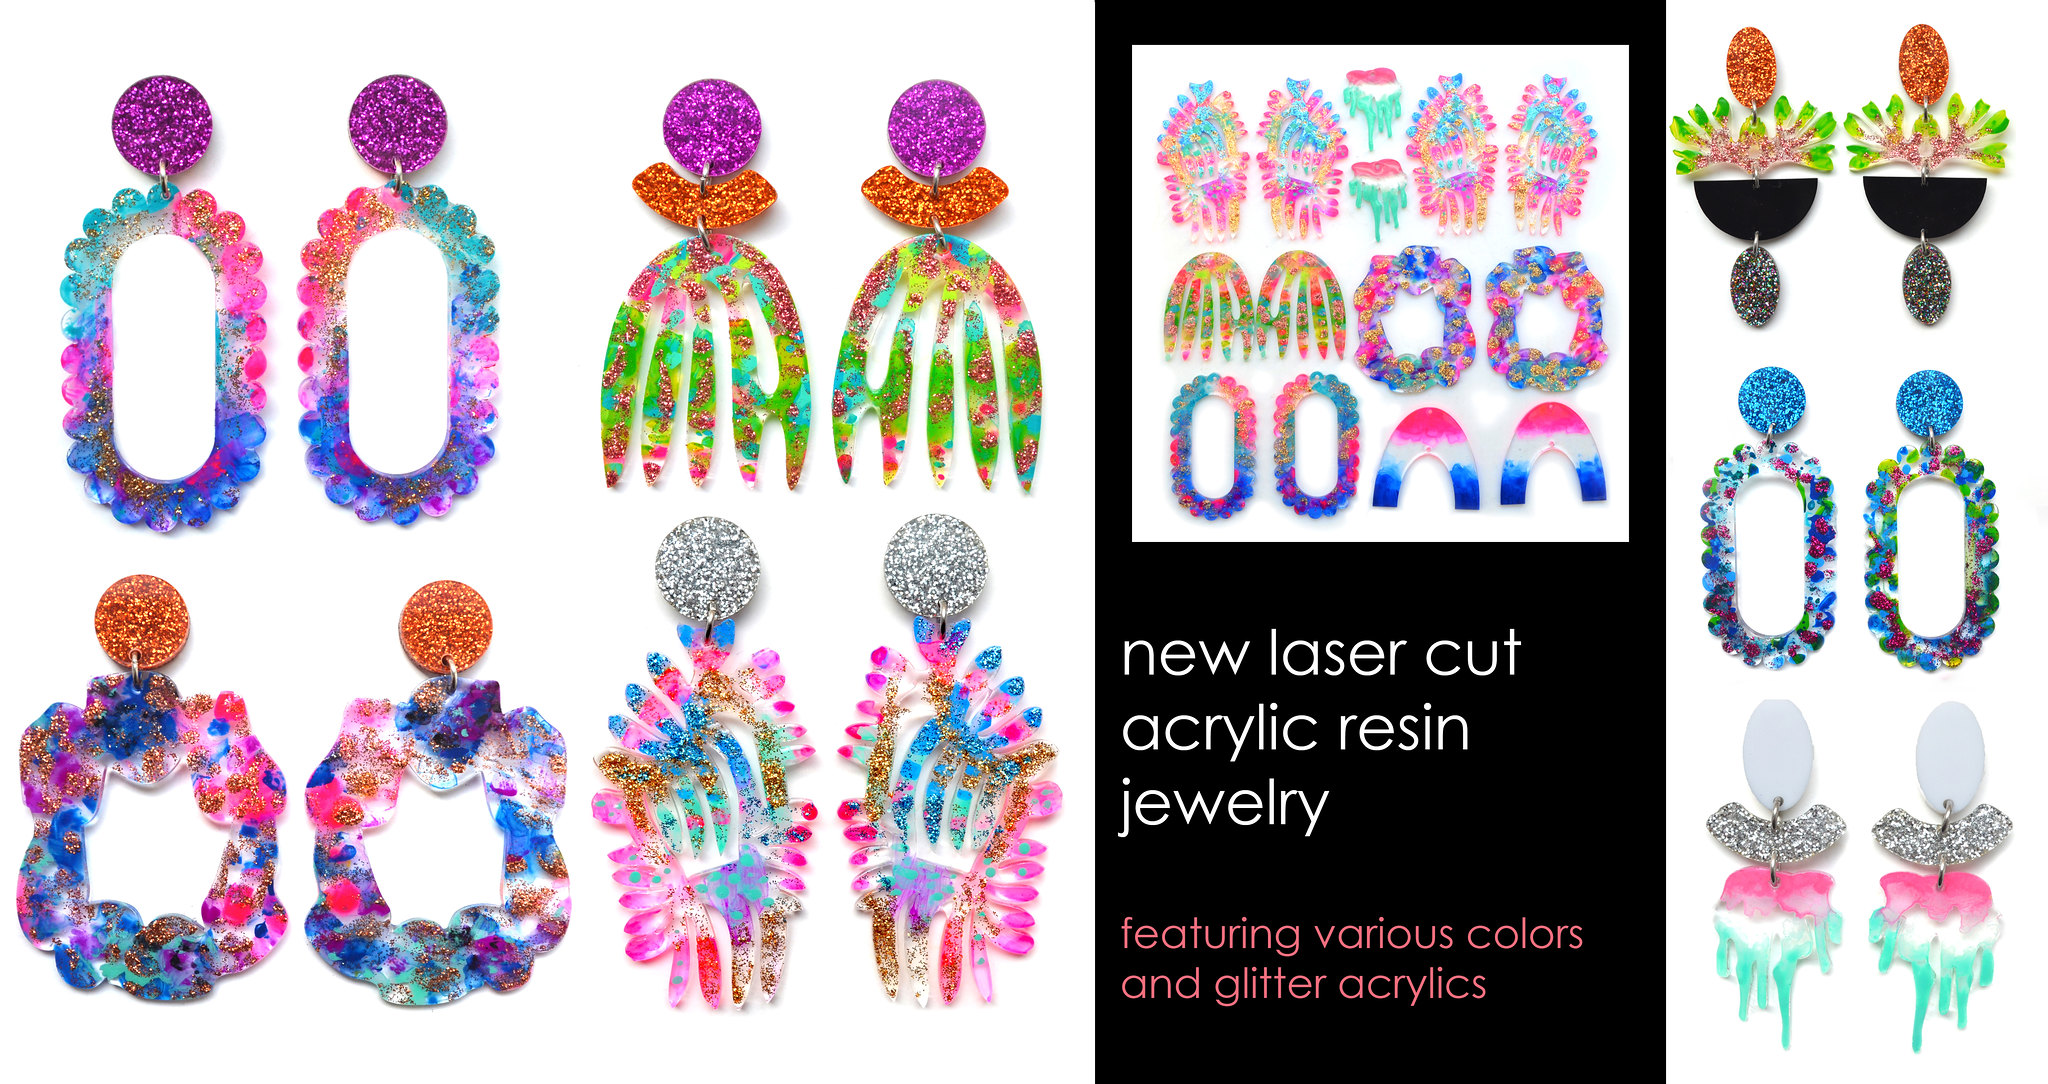 Boo and Boo Factory - Colorful Leather and Laser Cut Acrylic Statement Jewelry